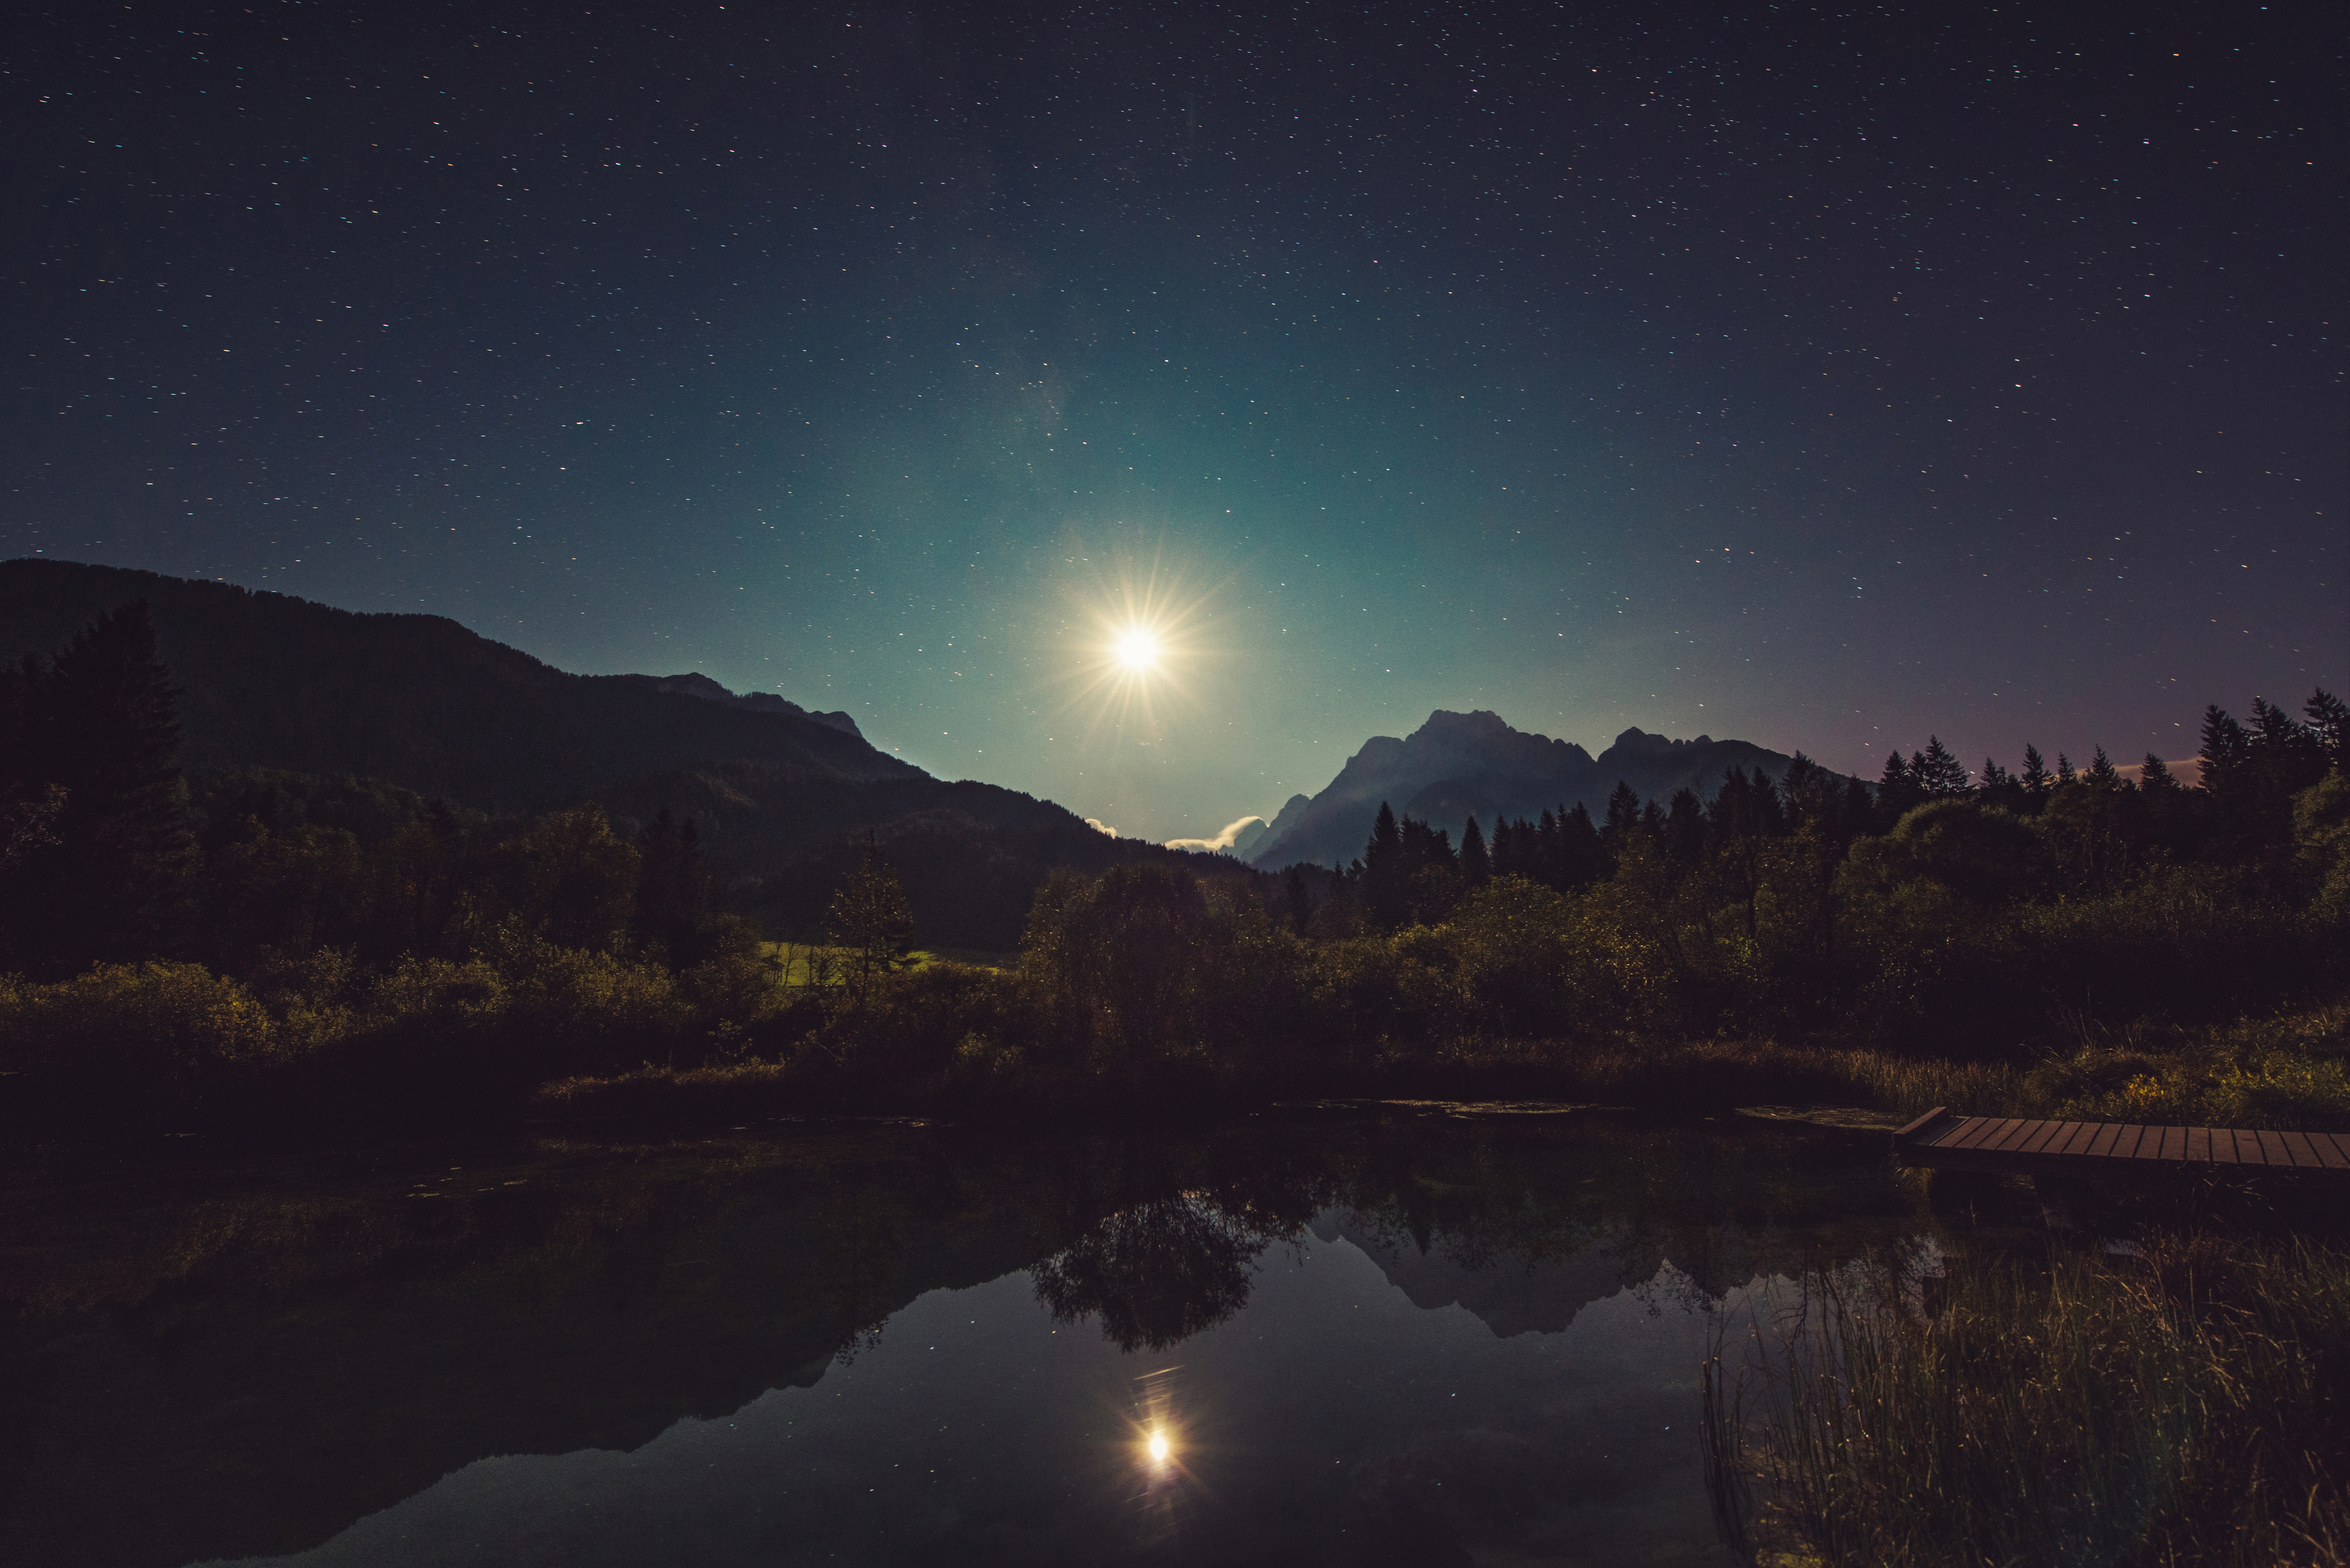 Nature Hd Wallpapers For Iphone Worm S Eye View Photography Of Starry Night 183 Free Stock Photo